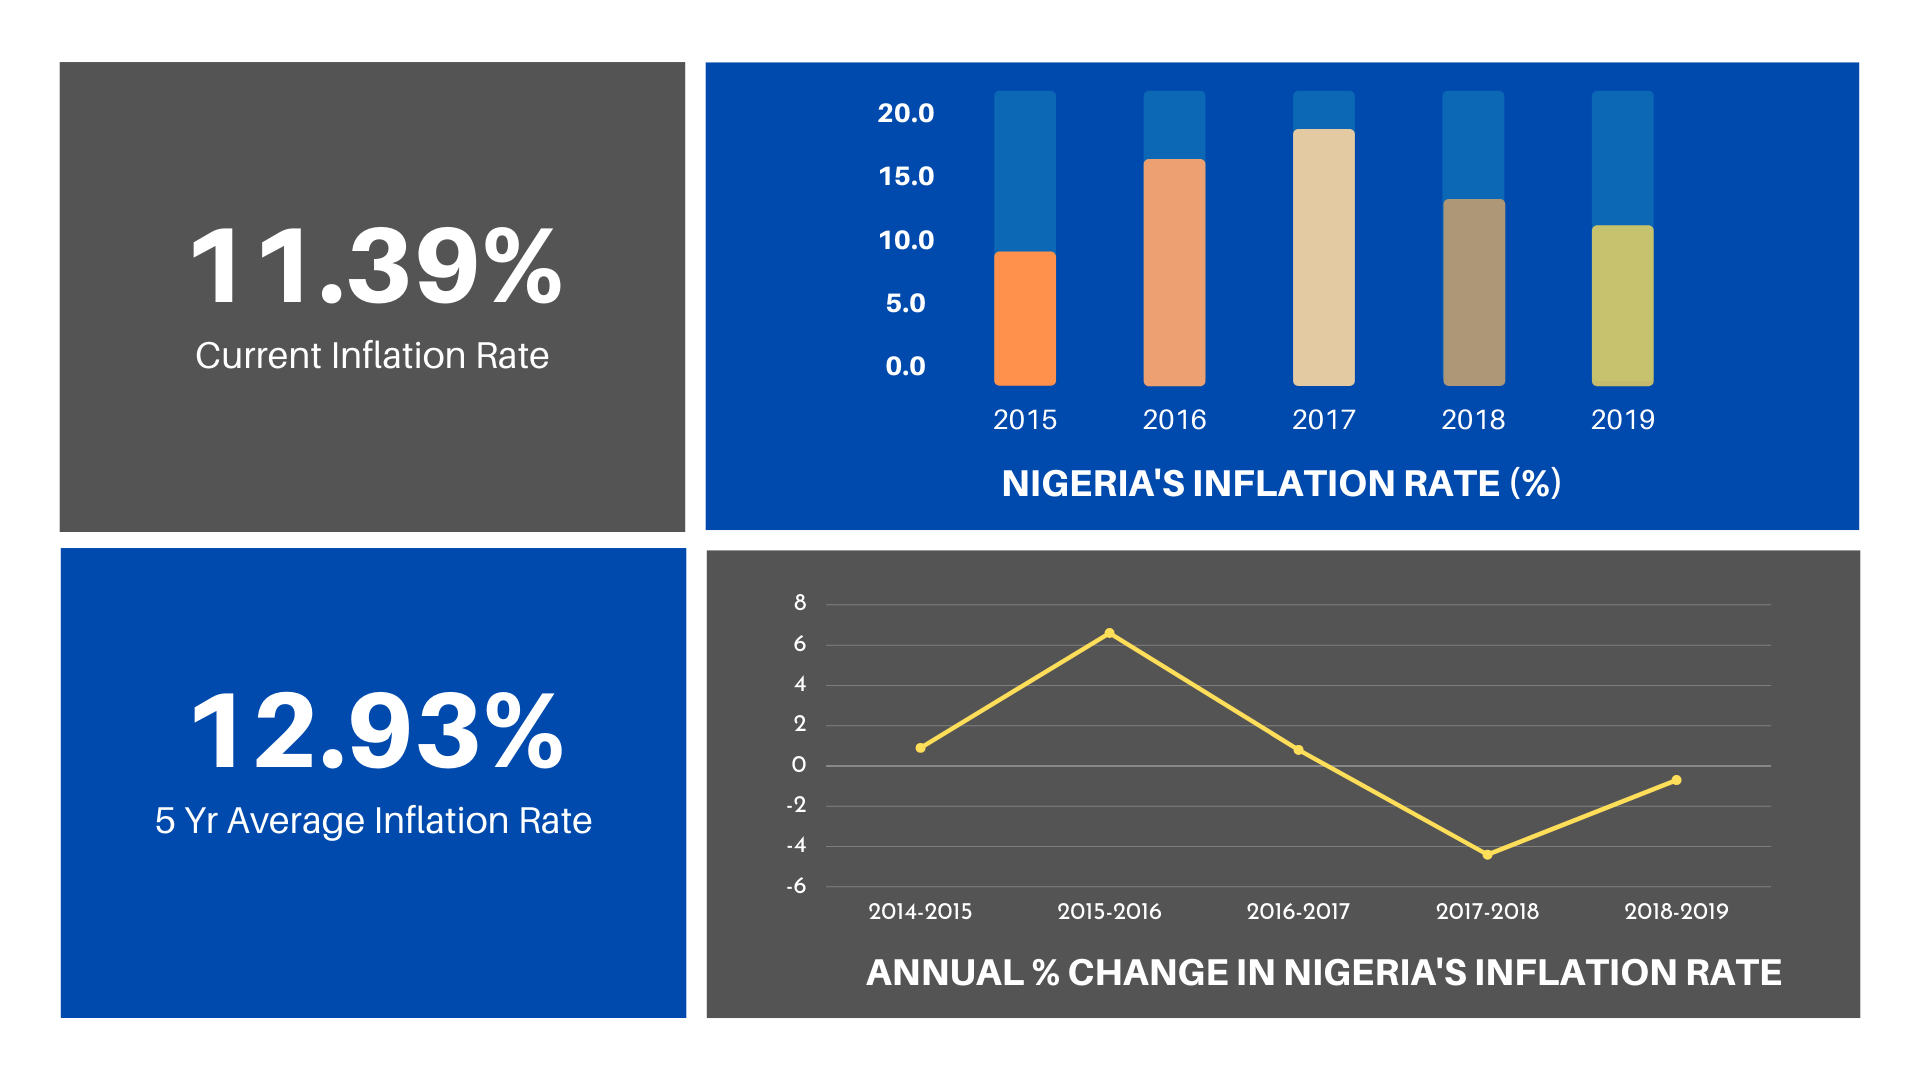 Nigeria's inflation trends